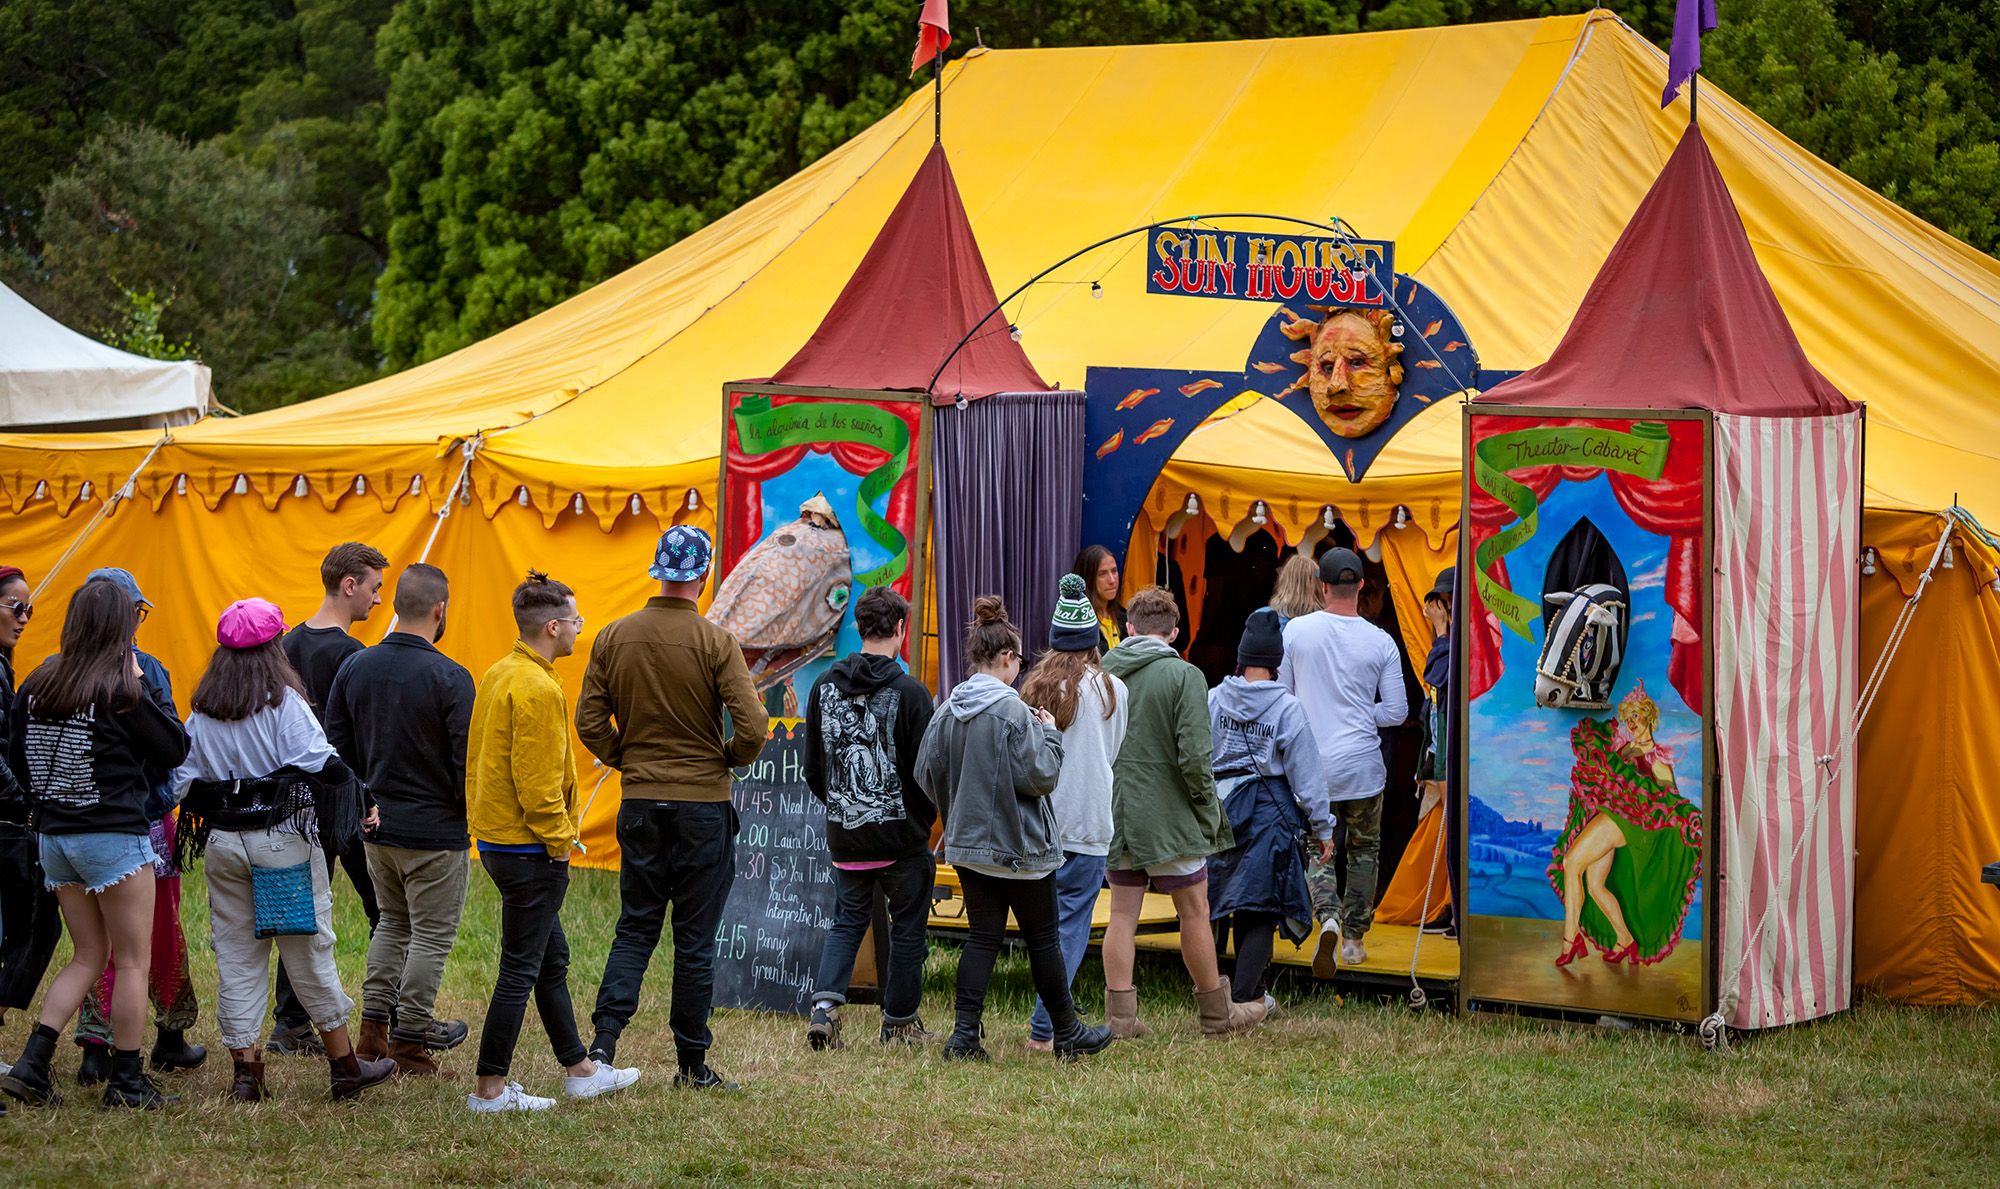 village festival Lost village an otherworldly experience in an abandoned woodland village, filled with all manner of unusual beings 🔮 register now for 2019 earlybird tickets lostvillagefestivalcom.